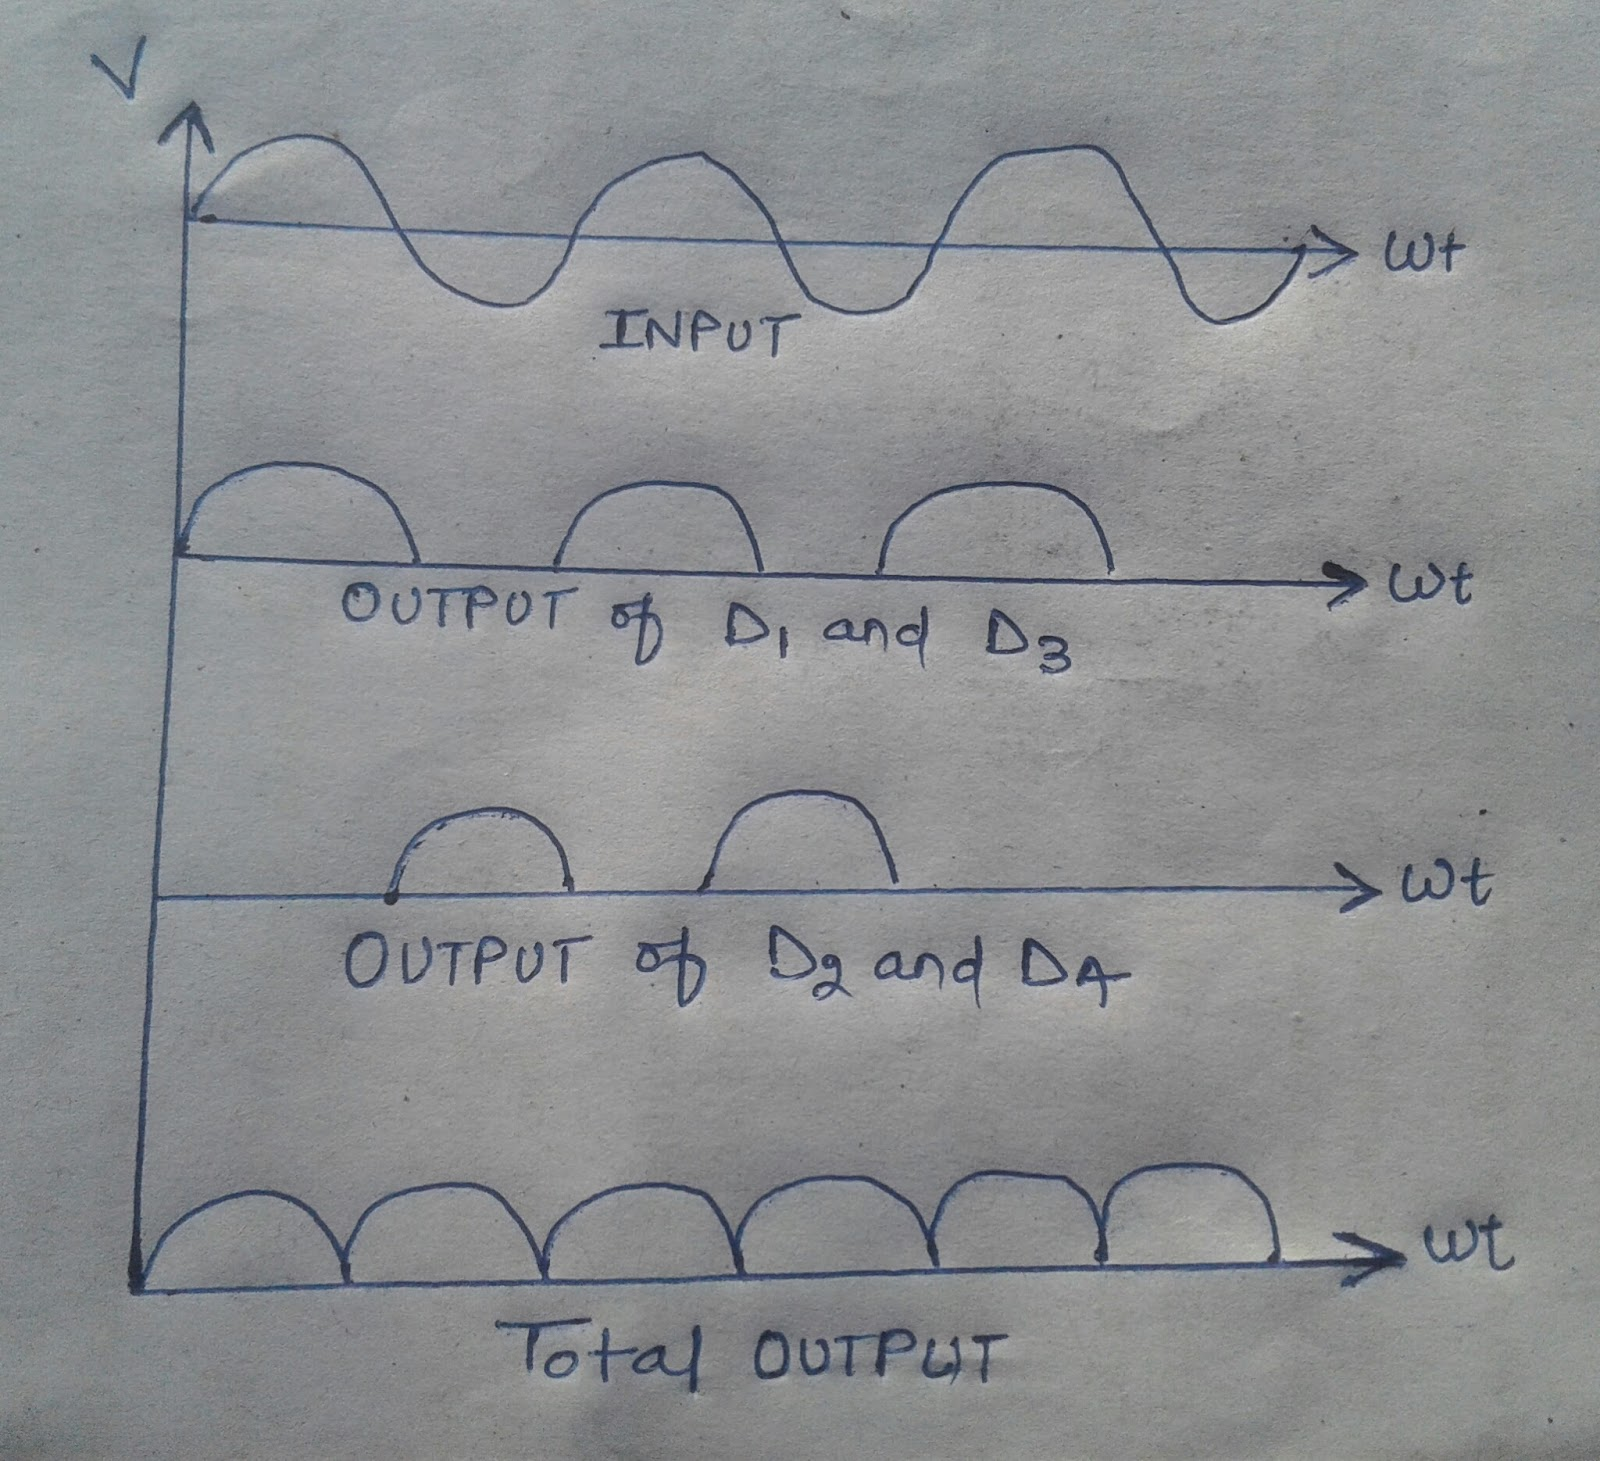 Physics Maths Lover Sawtooth Wave Generator Circuit Using Ujt 1the Transformer With Centre Tapping Is Not Needed 2the Output Twice That Of The Tap For Same Secondary Voltage